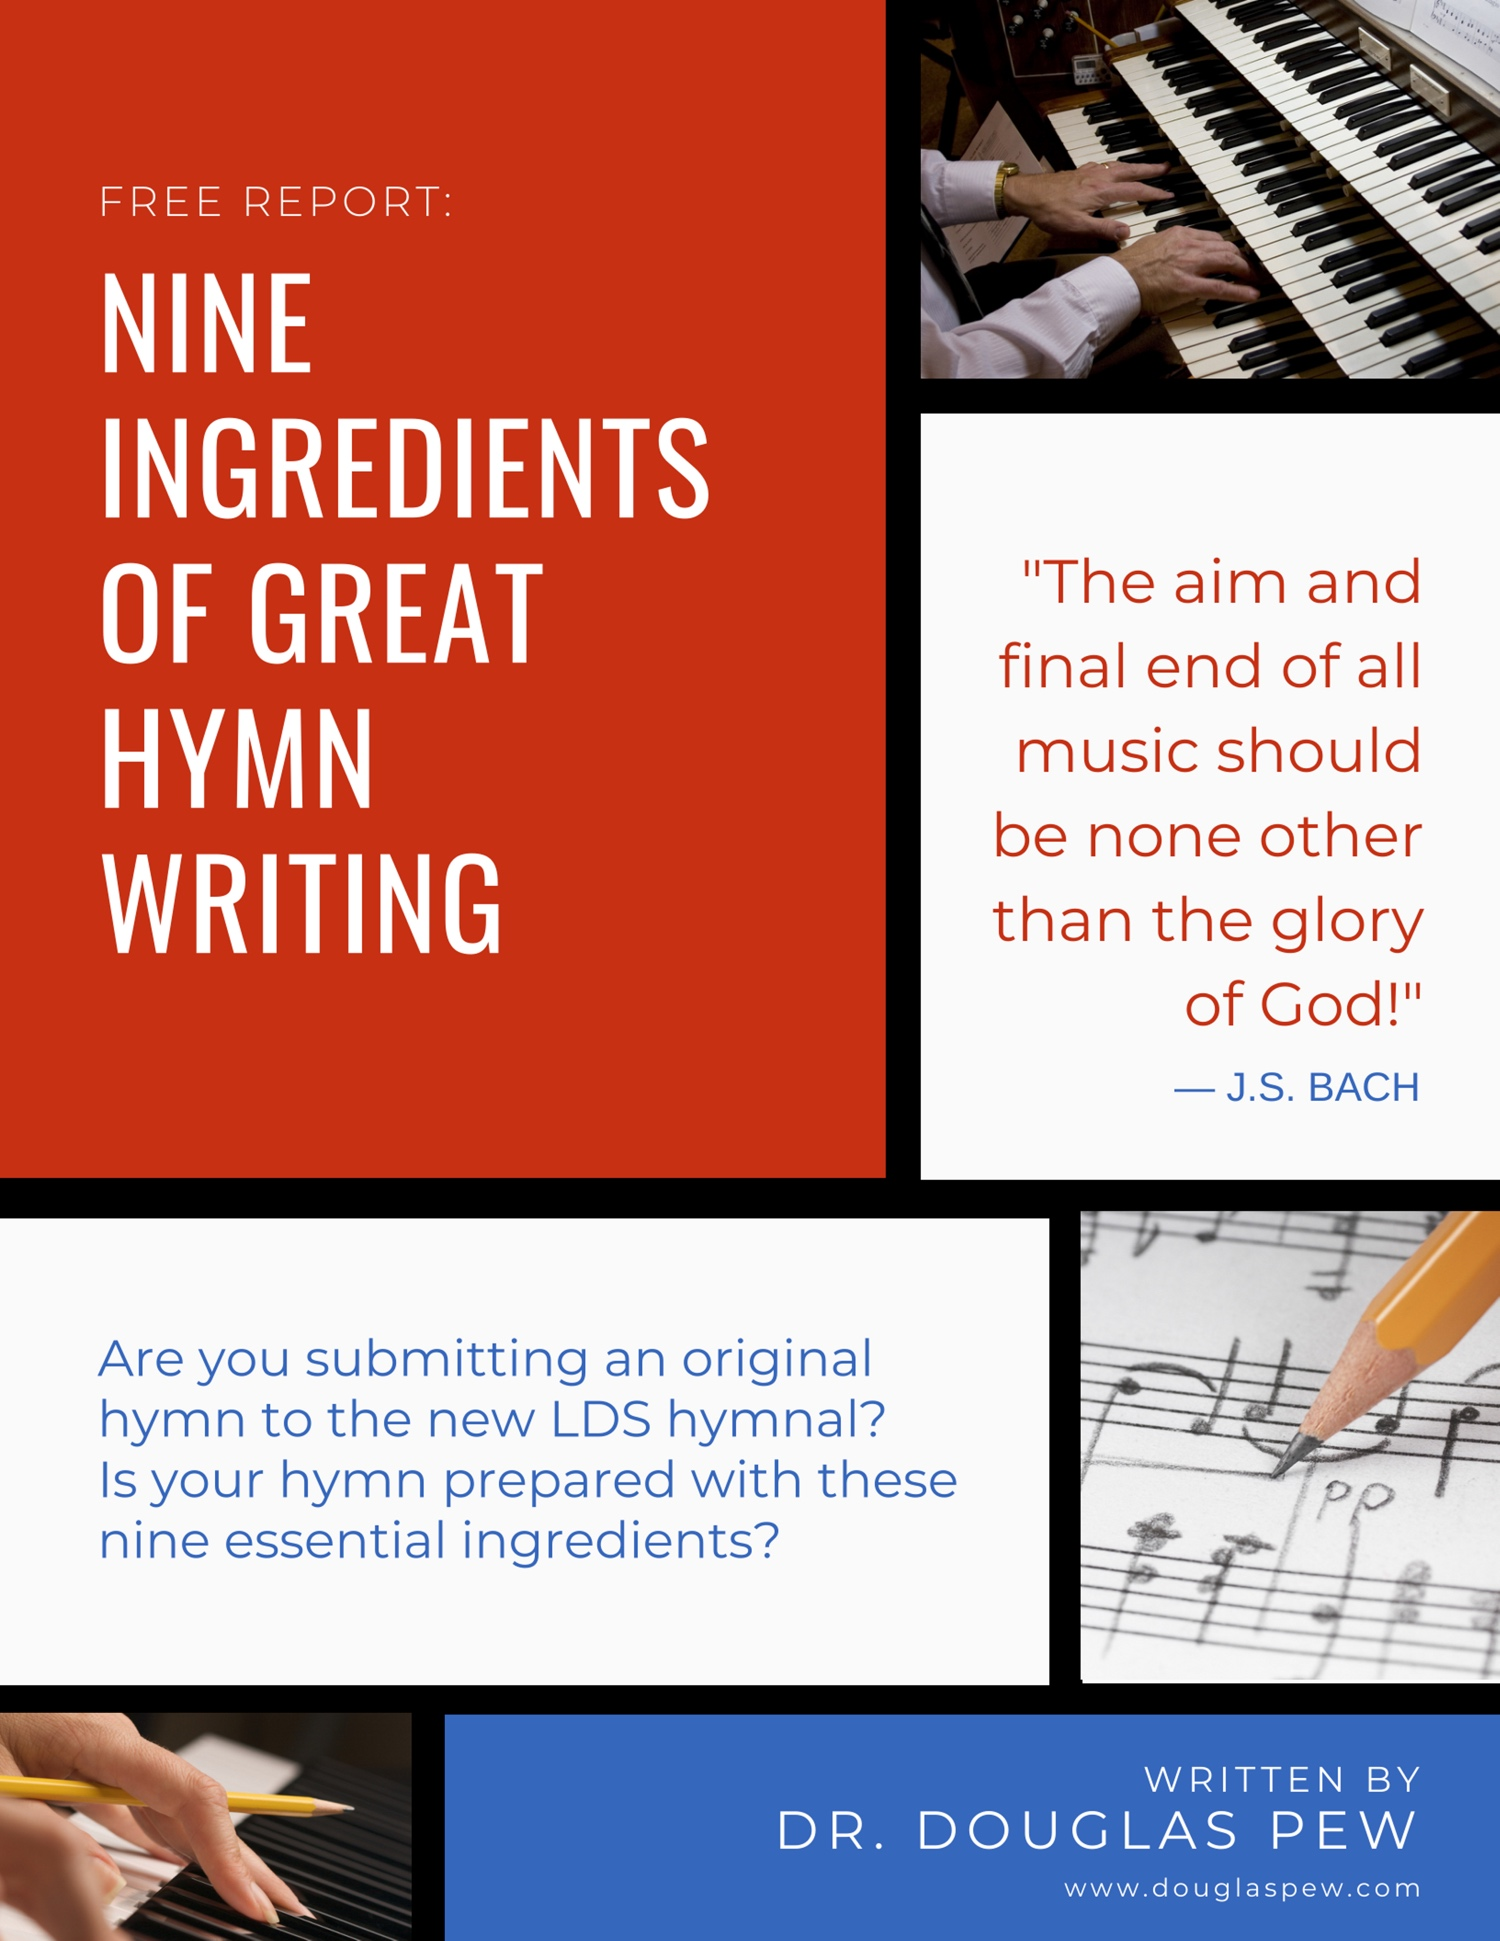 9 Ingredients of Great Hymn Writing